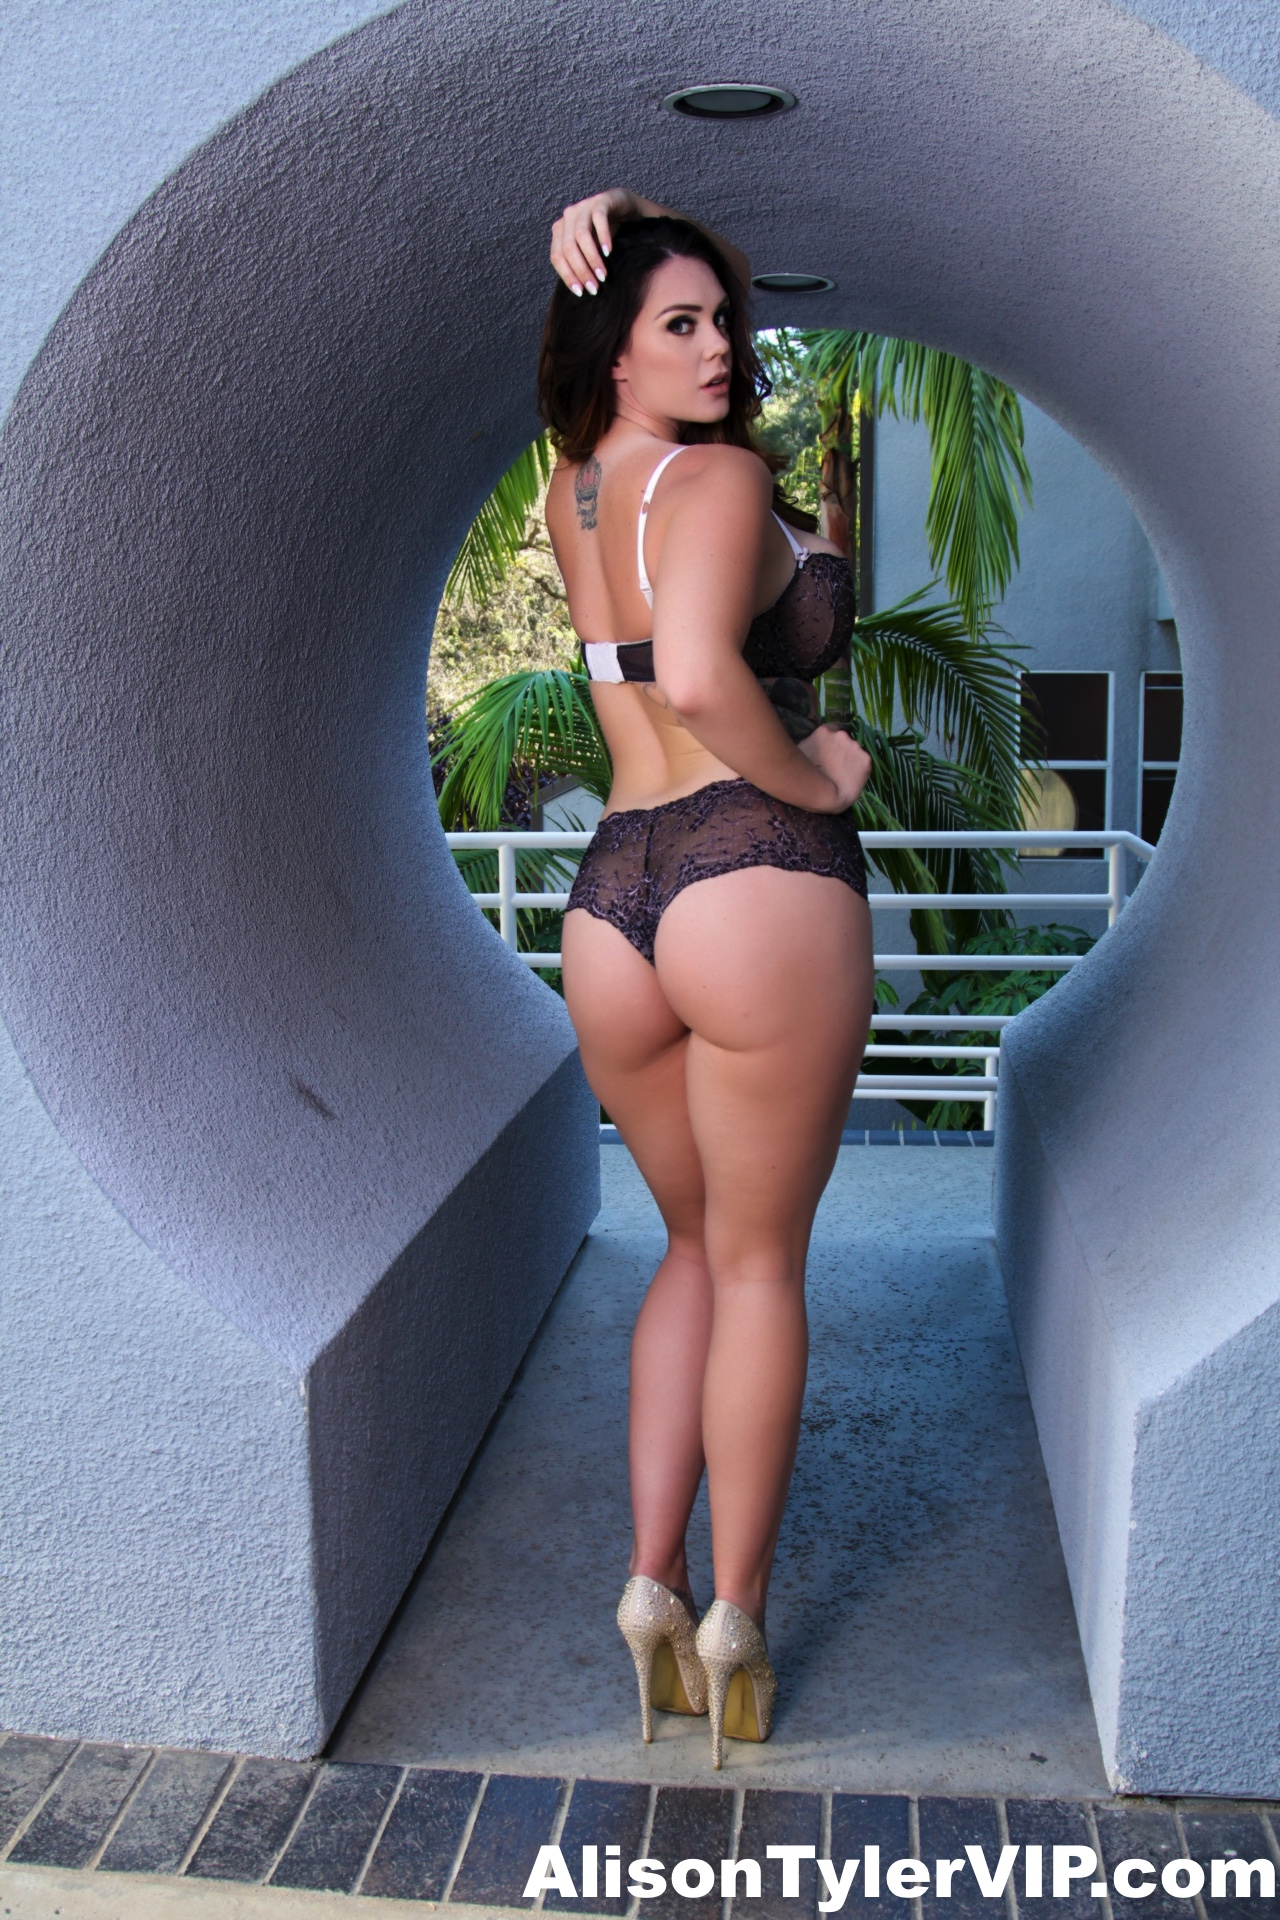 Sunny leone is miss november twistys treat of the year - 2 part 6